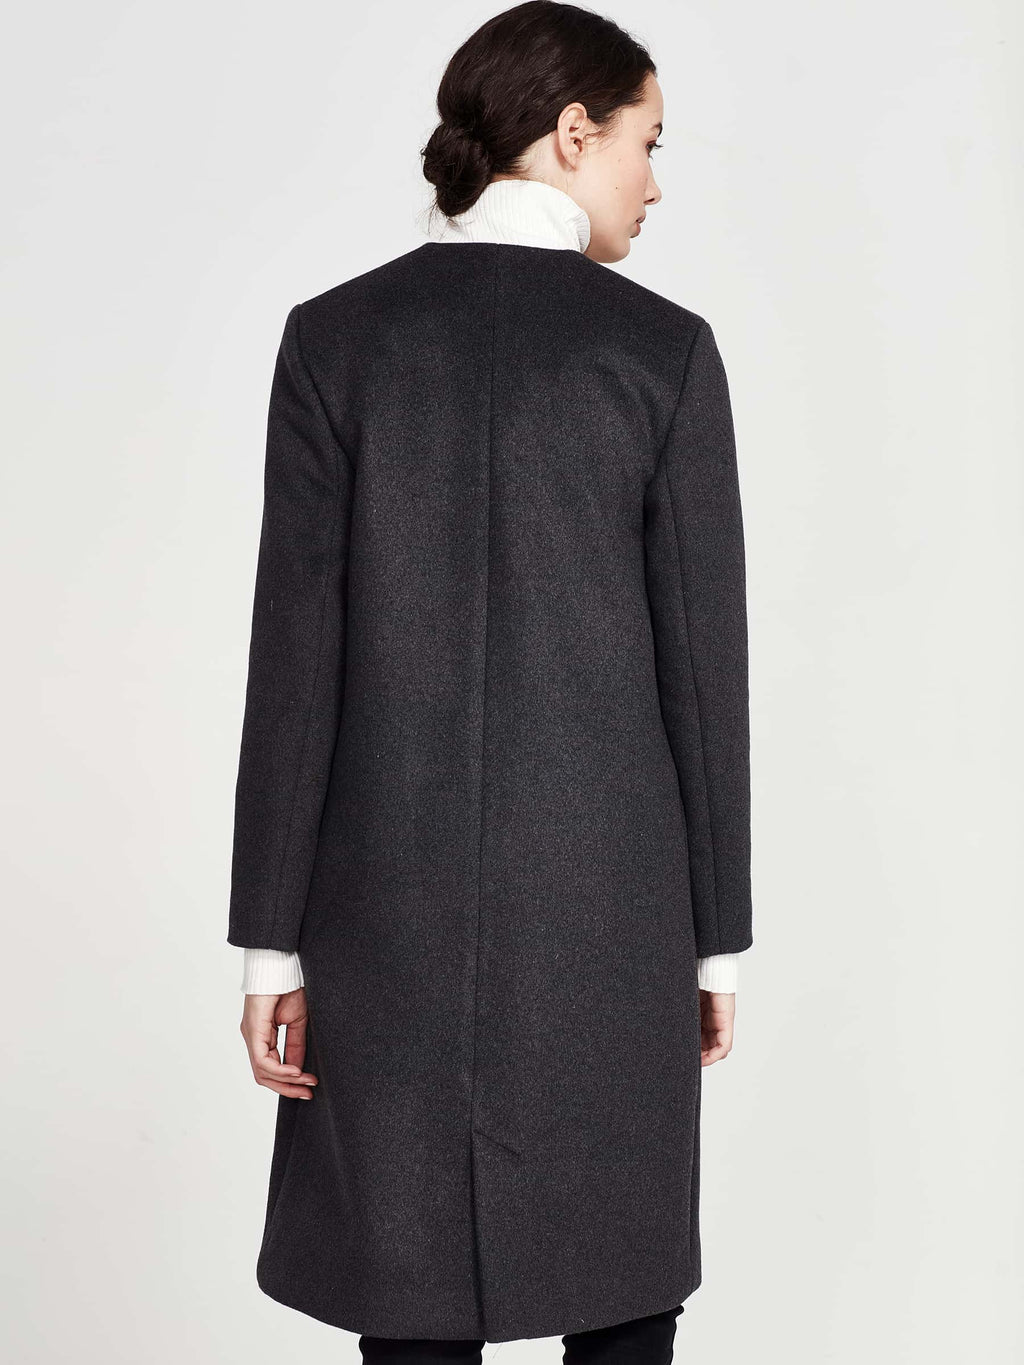 Colette Coat (Brushed Coating) Charcoal